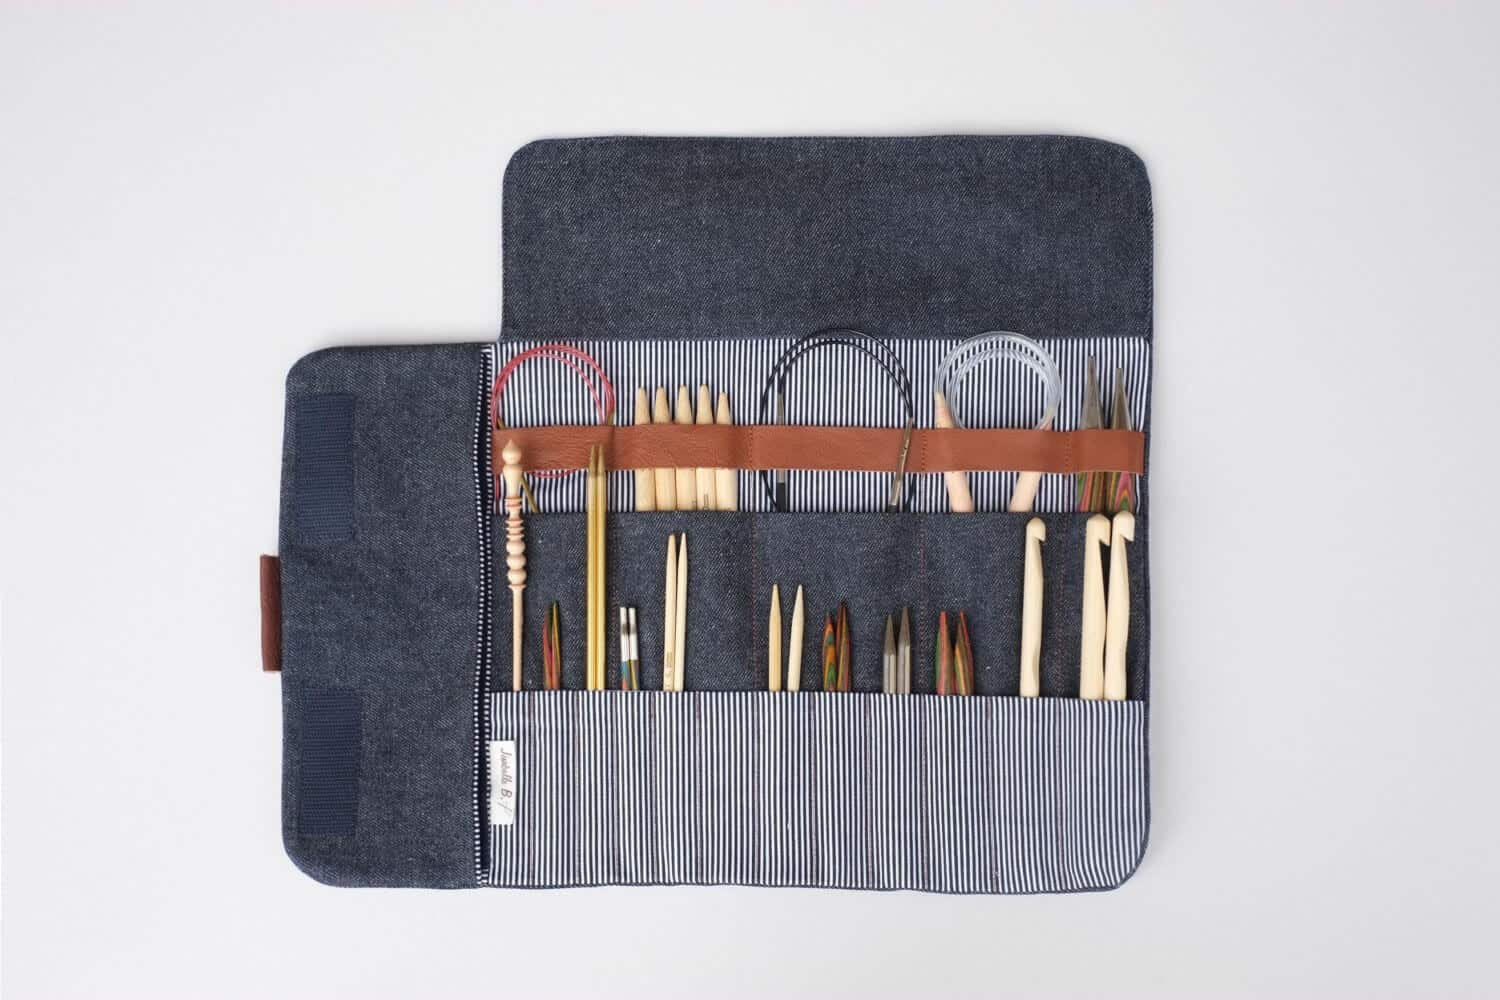 Image of a Crochet Hook Case with various hooks as a sample